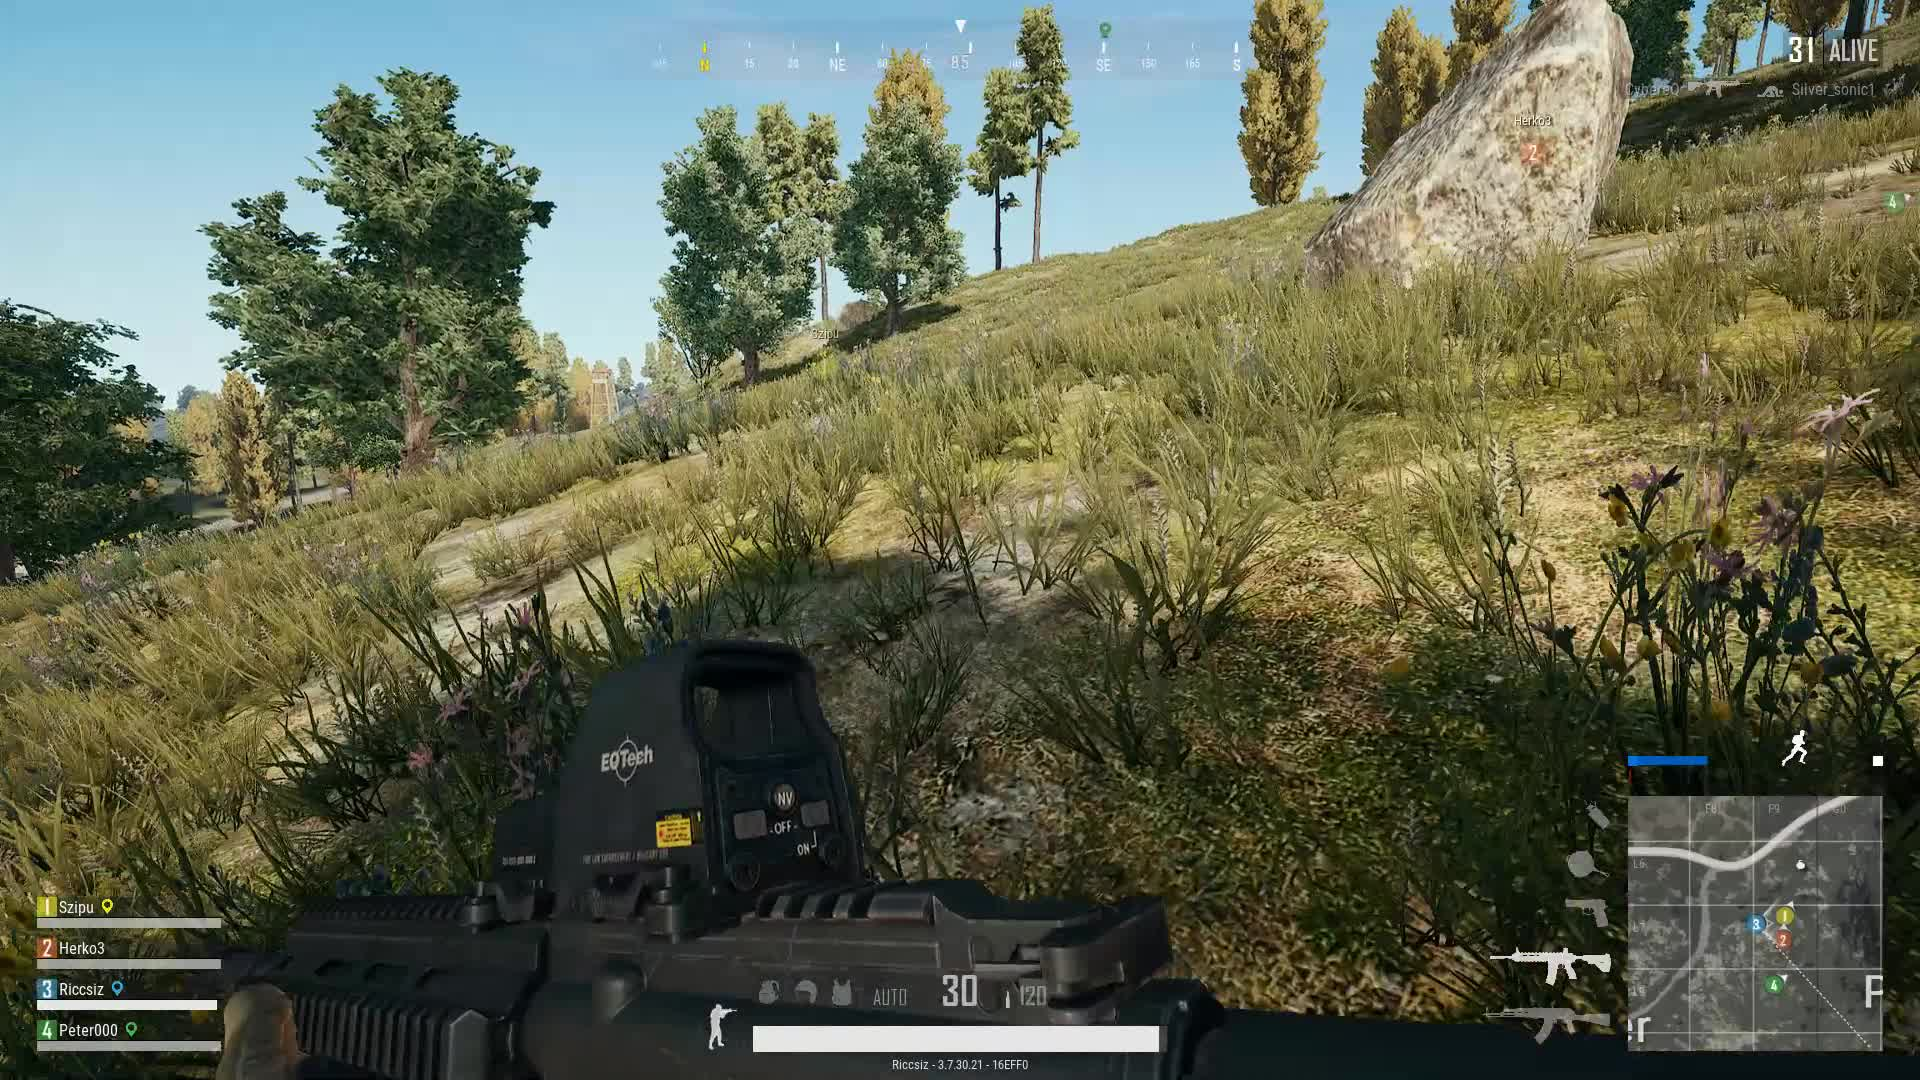 1v1, Aim, Battle Royal, Battle Royale, Battlegrounds, Bug, Bullet, Circle, FPS, Fail, First Person, Headshot, M416, PLAYERUNKNOWN'S BATTLEGROUNDS, PUBG, angle, car, dacia, PUBG - Do Not Trust Abandoned Cars GIFs